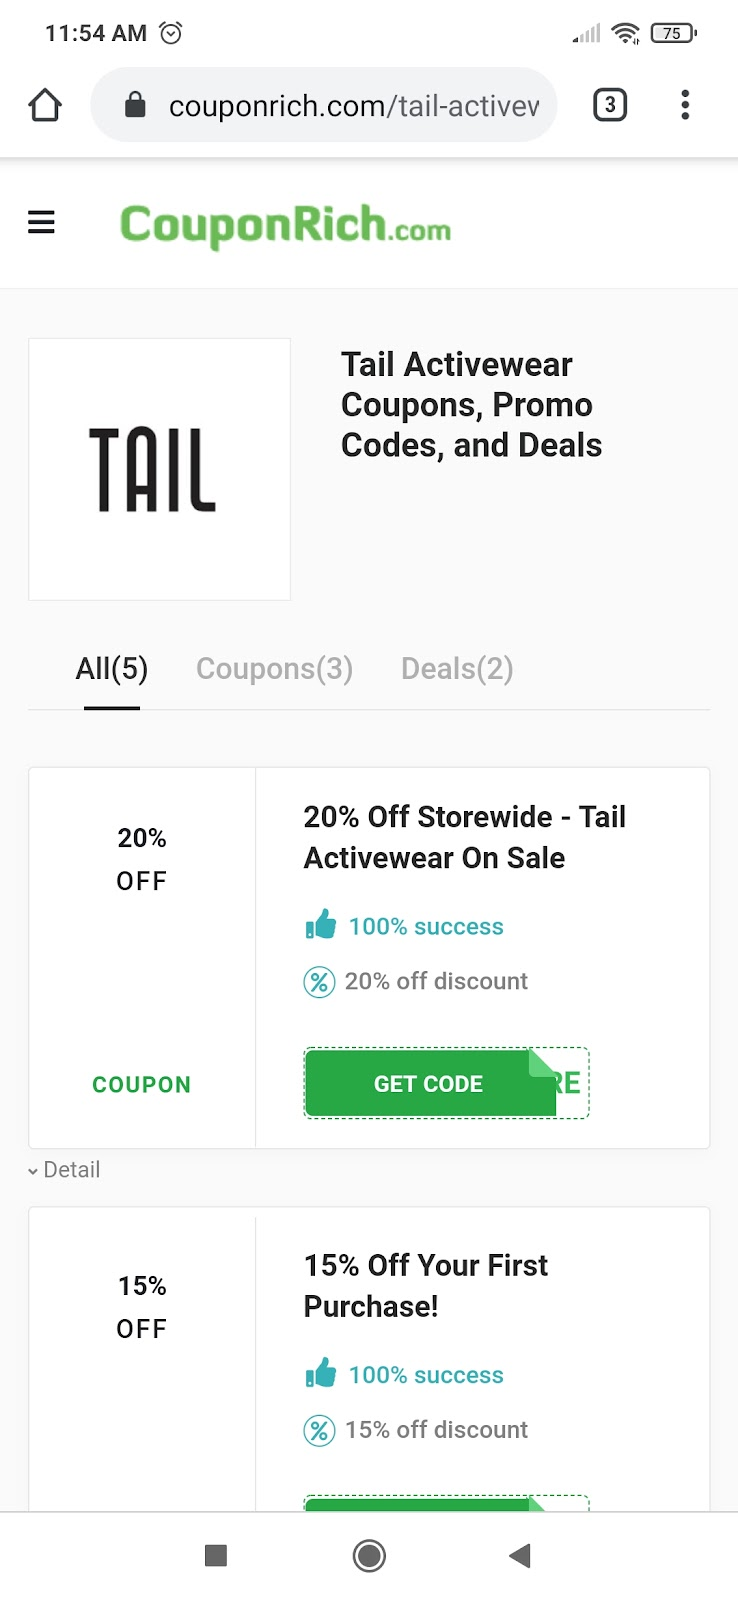 Tail Activewear coupon code on Couponrich website